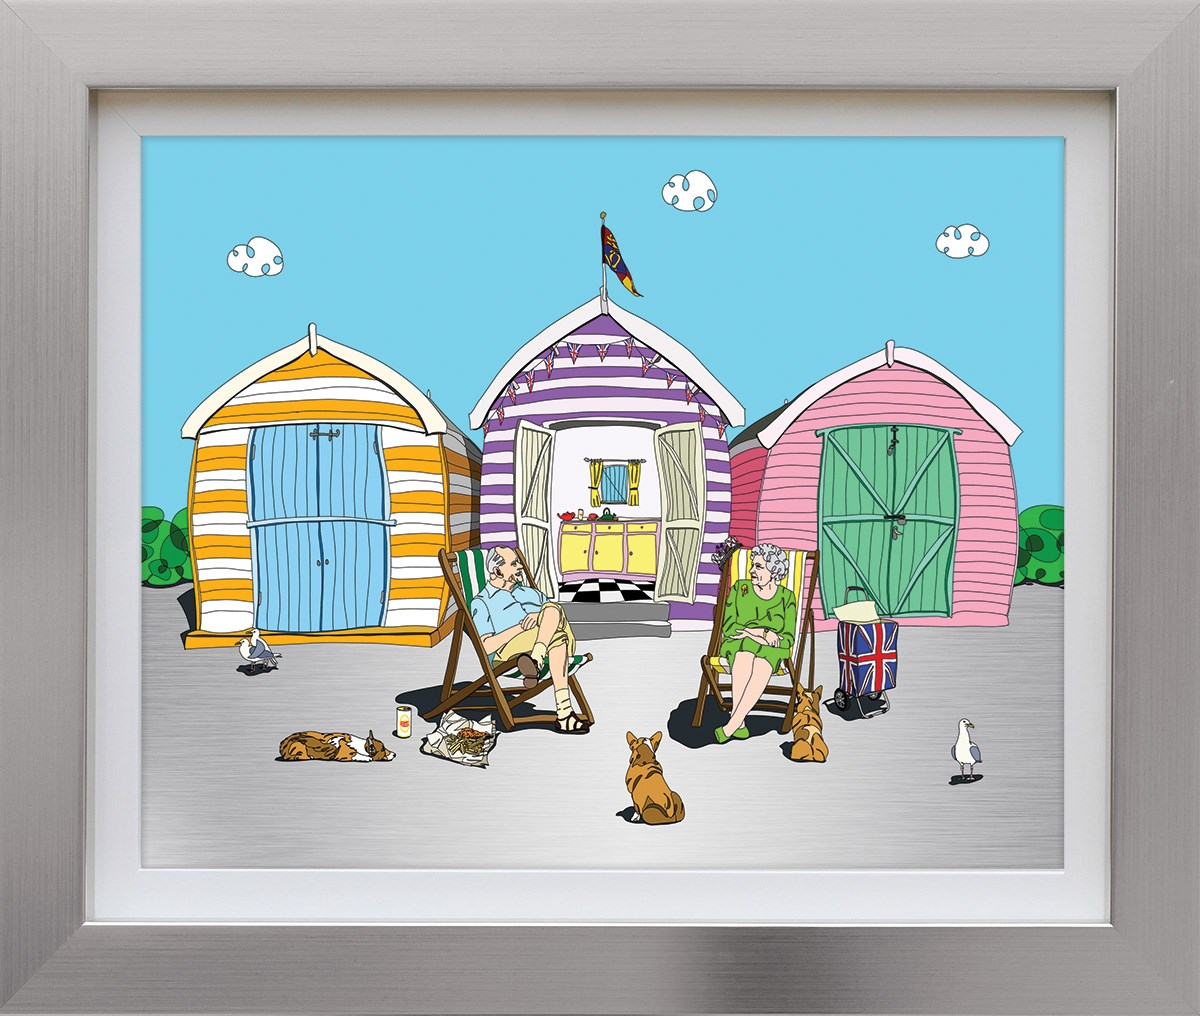 A Right Royal Holiday by Dylan Izaak - Limited Edition on Aluminium sized 19x24 inches. Available from Whitewall Galleries